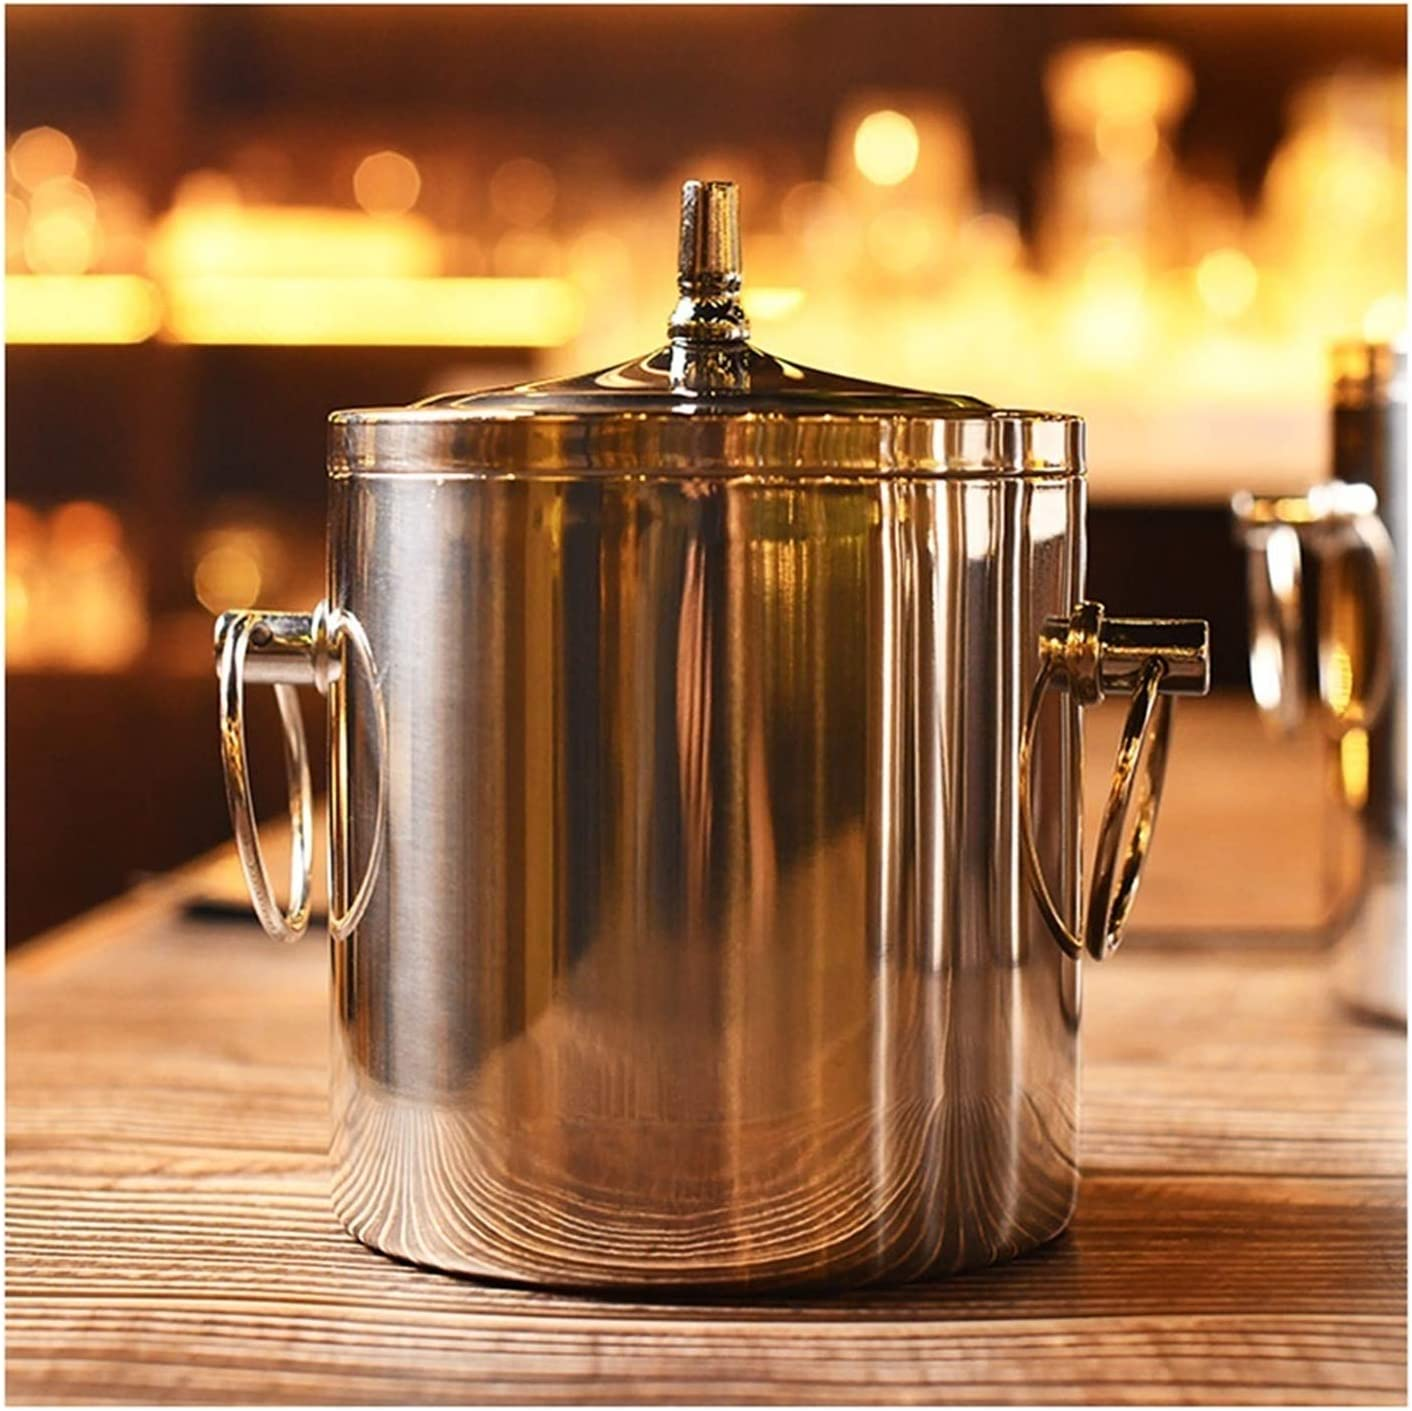 Beverage Tub Bar Beer Cocktail Drink Bucket Lid Ranking TOP17 With gift R Small Ice